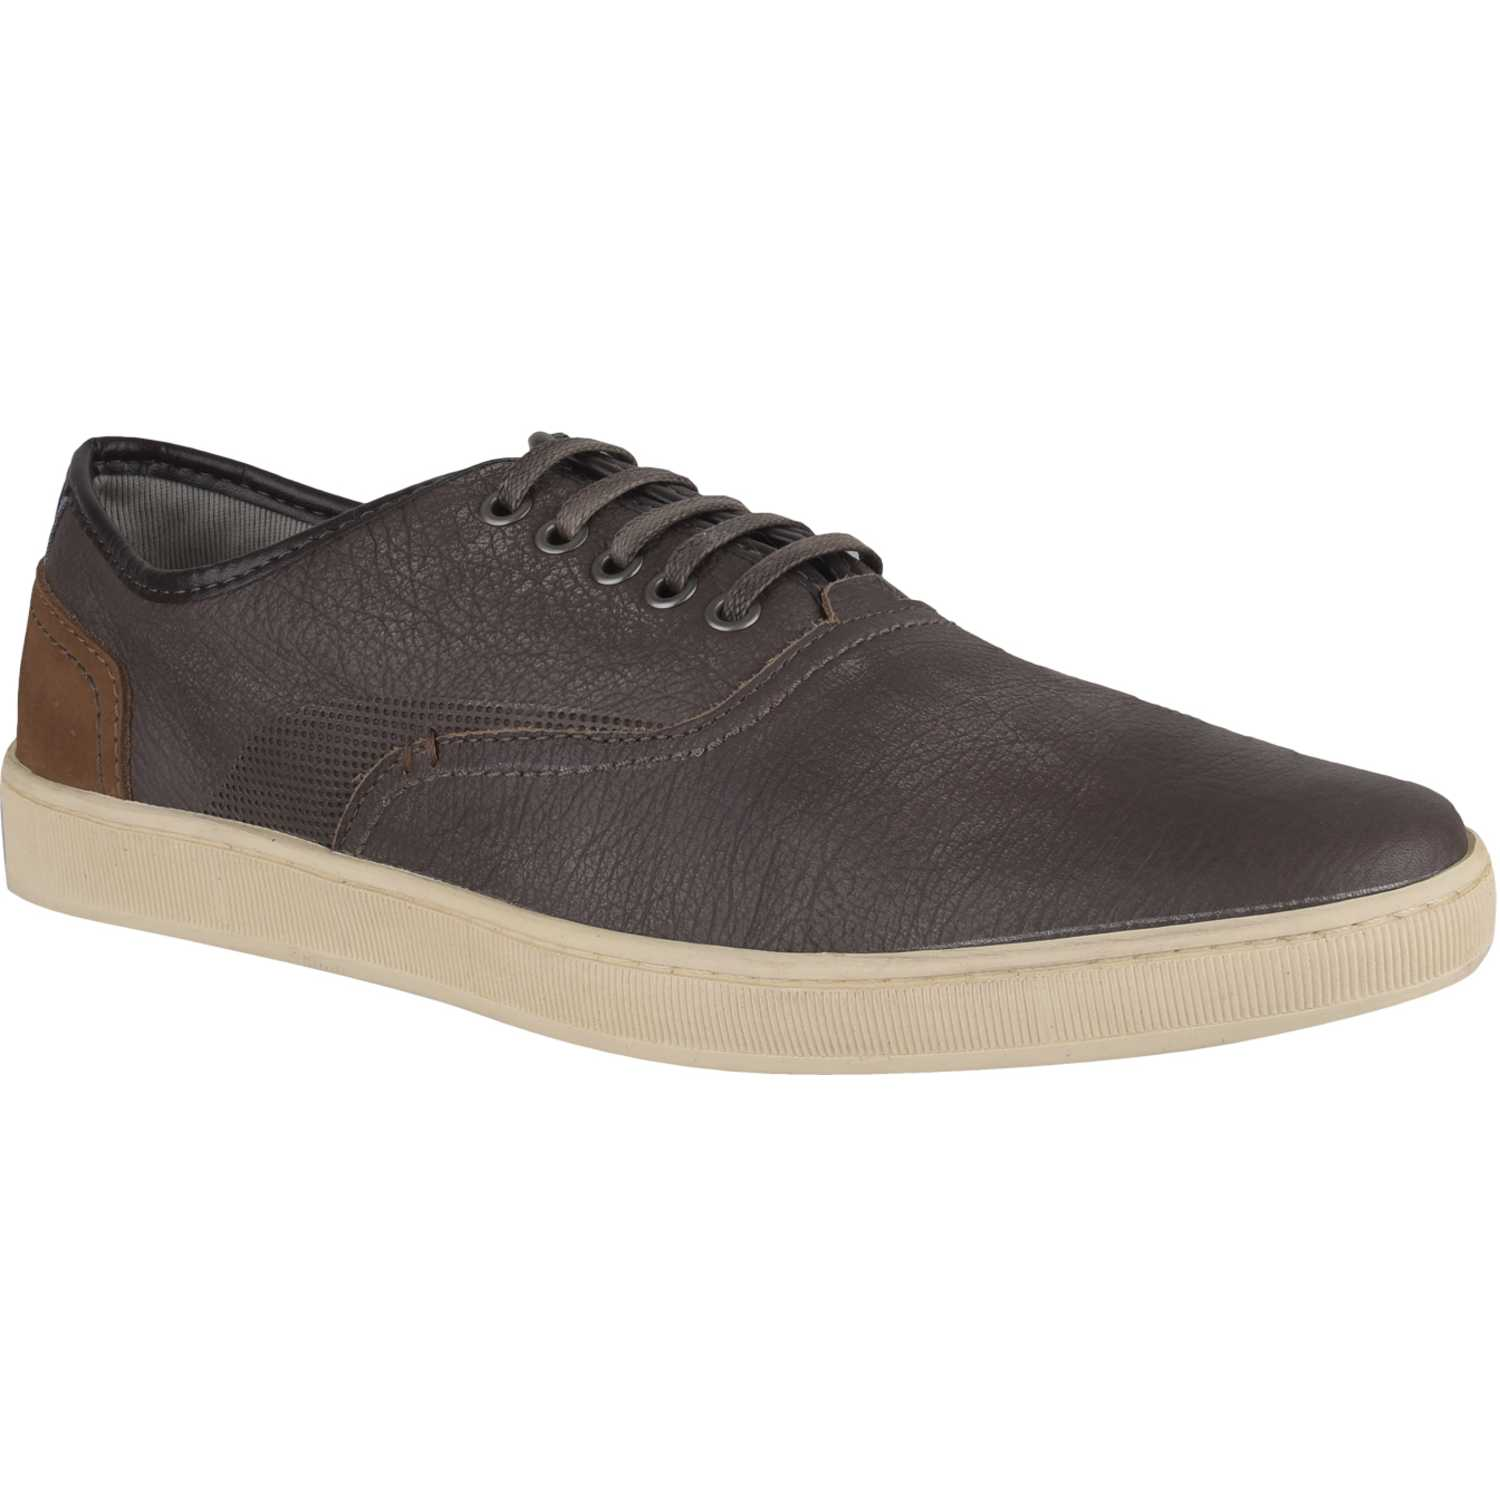 Bata arsenal Marron Zapatillas Fashion